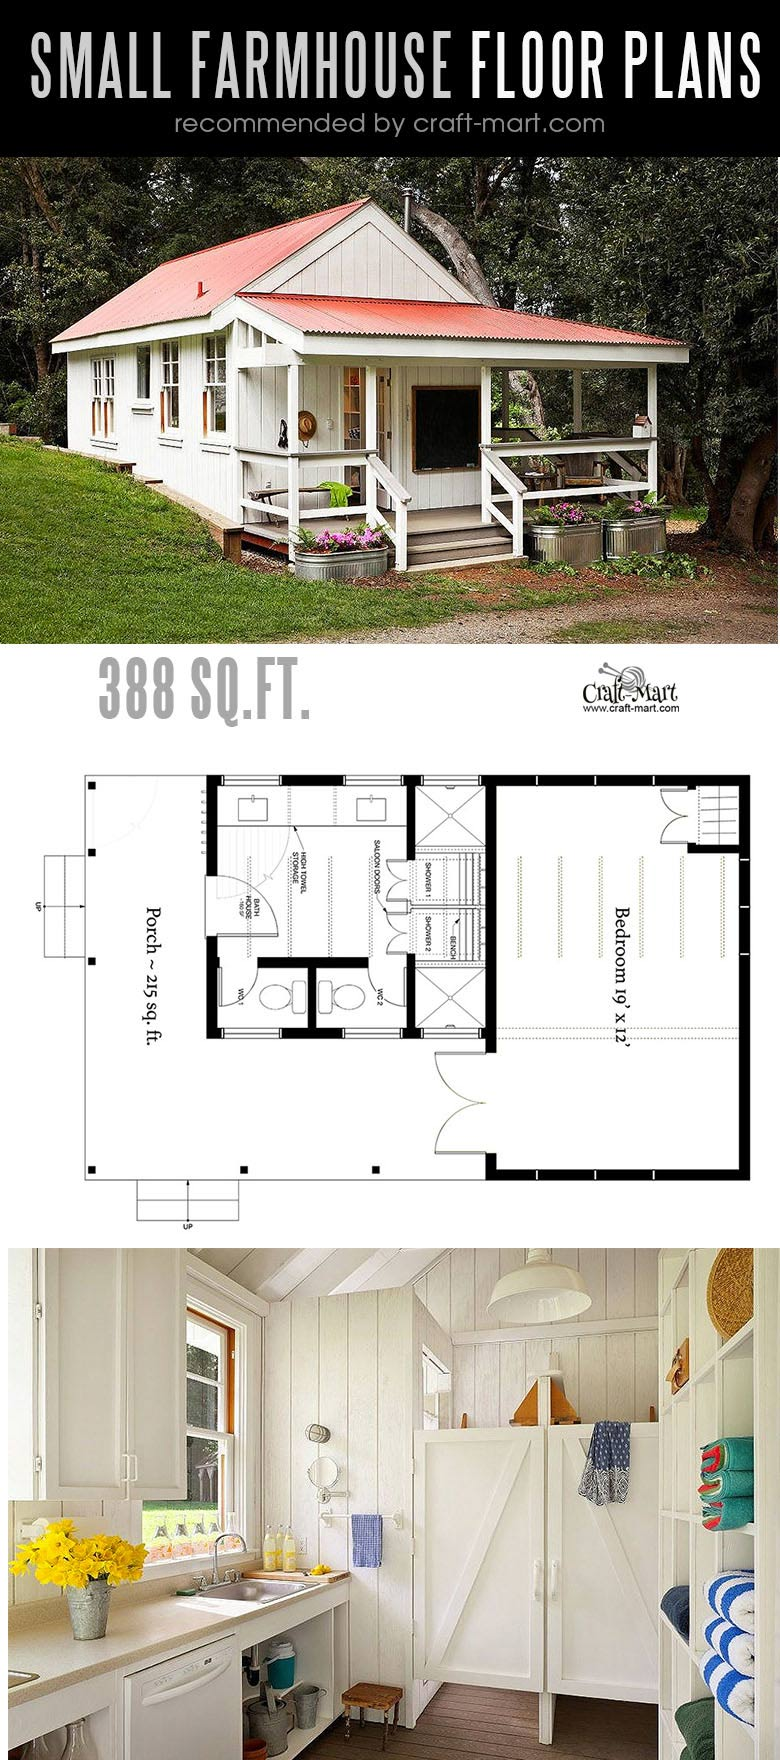 Summer Kitchen Design Plans Small Modern Farmhouse Plans For Building A Home Of Your Dreams